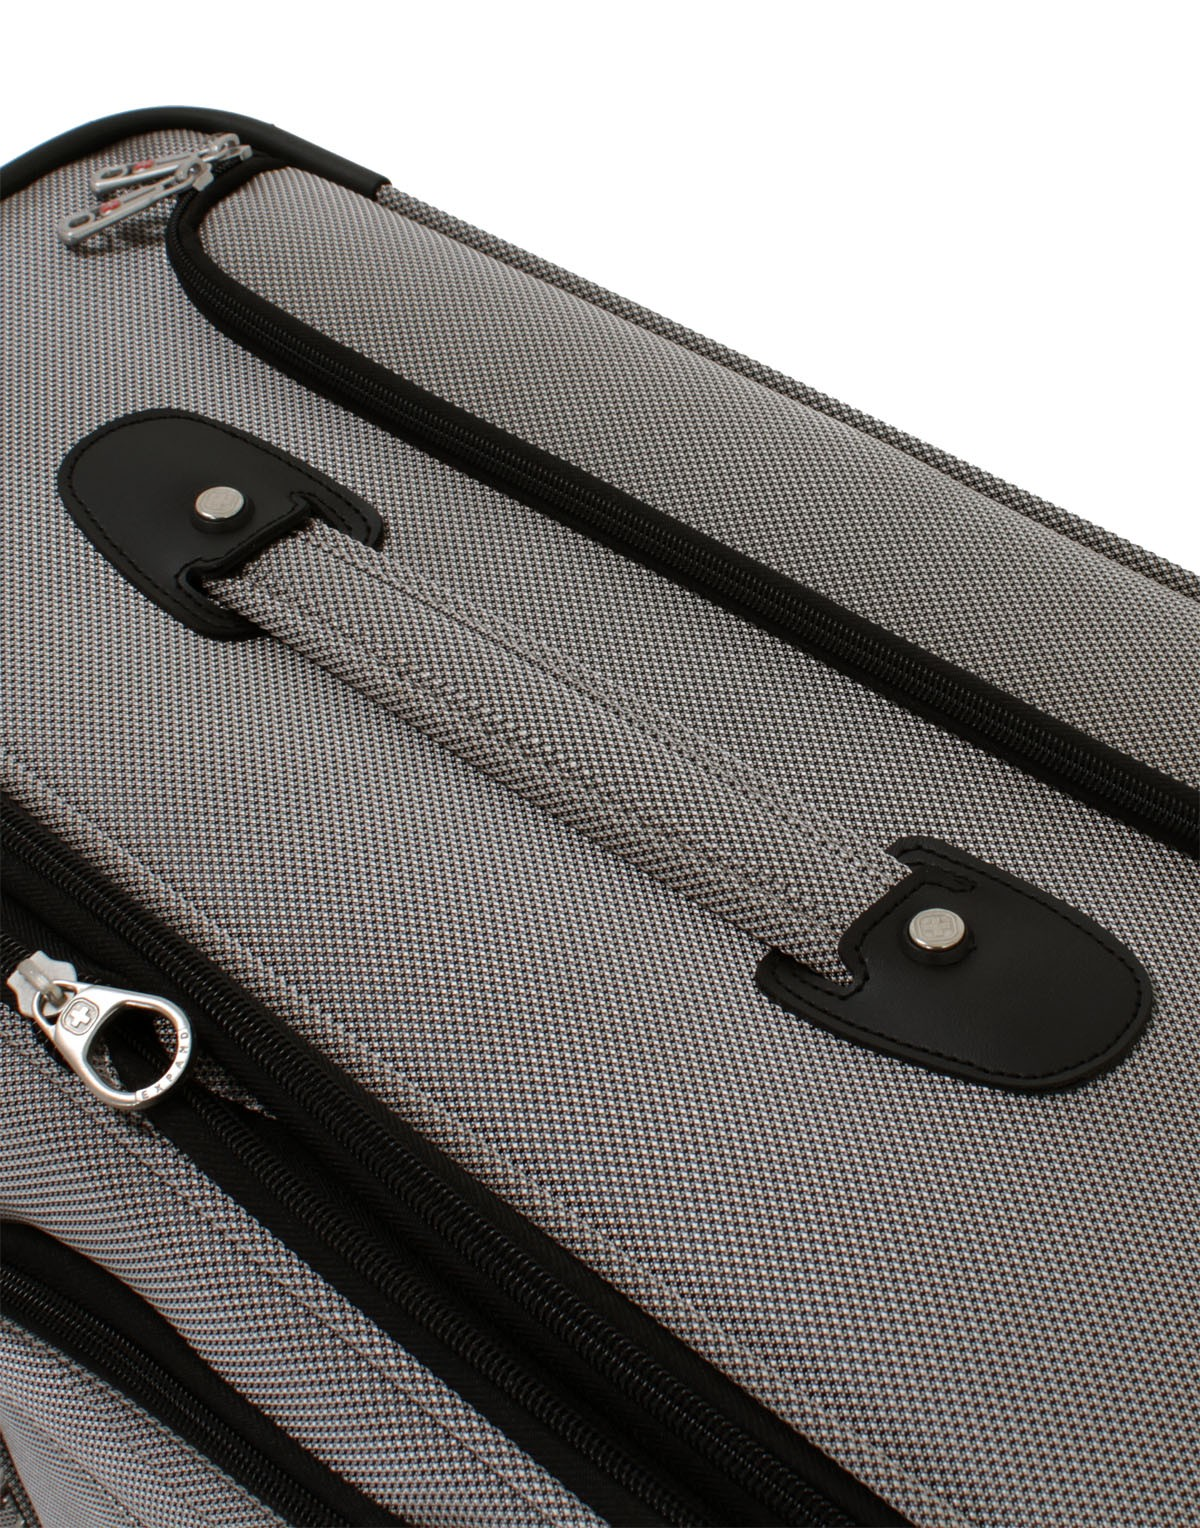 c57b39b5cb swissgear -7895-19-zurich-expandable-laptop-carry-on-spinner-luggage-pewter-8fa.jpg